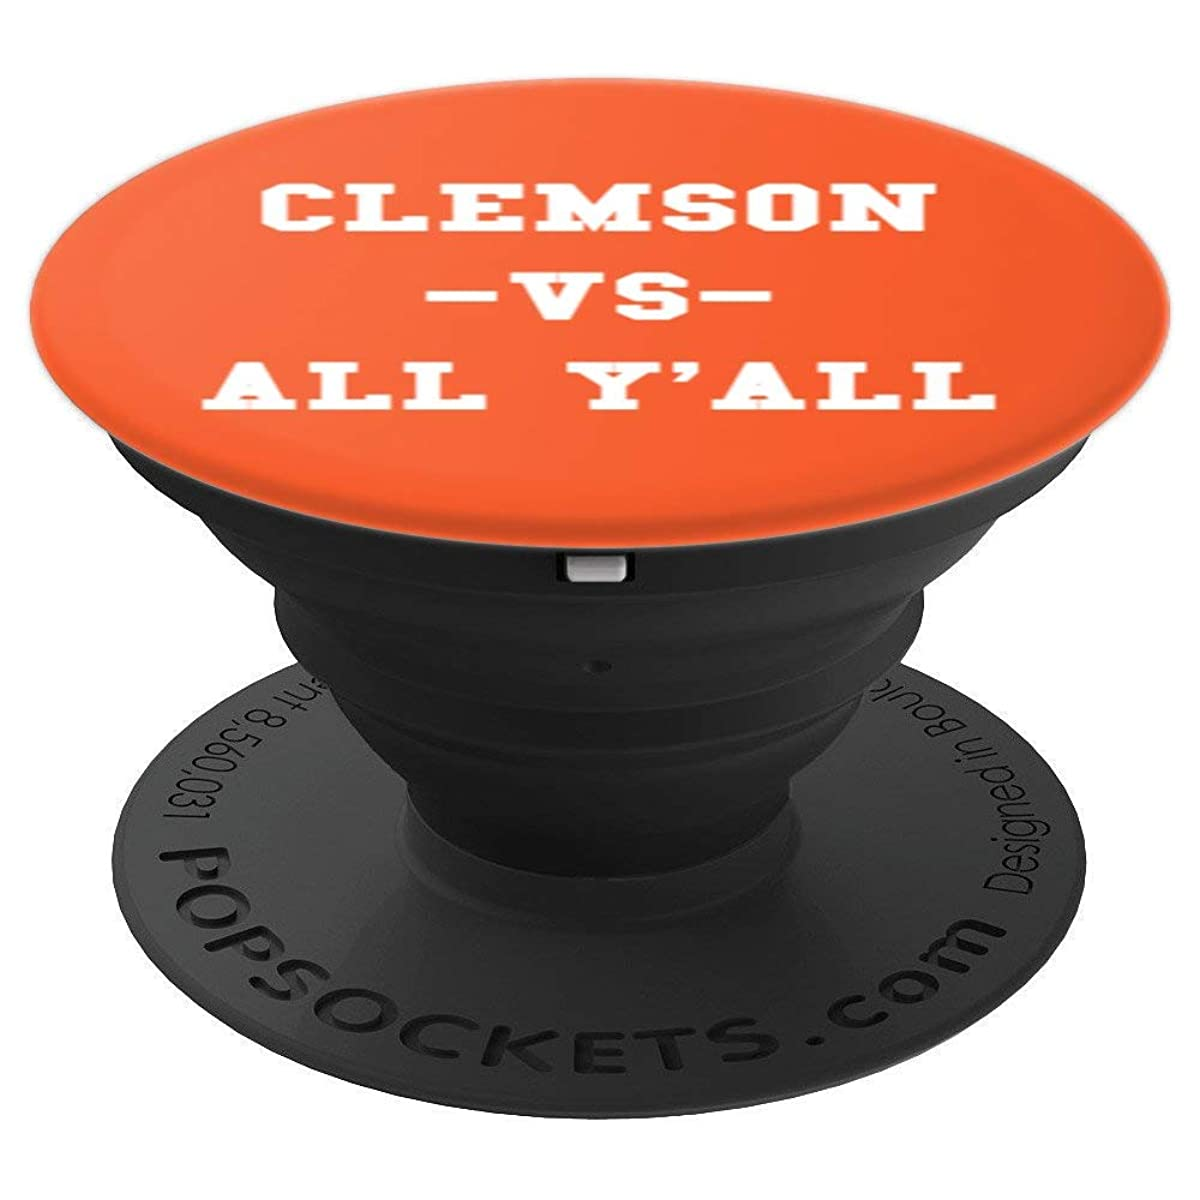 Clemson Vs All Y'All Teen Men Women Perfect Gift - PopSockets Grip and Stand for Phones and Tablets